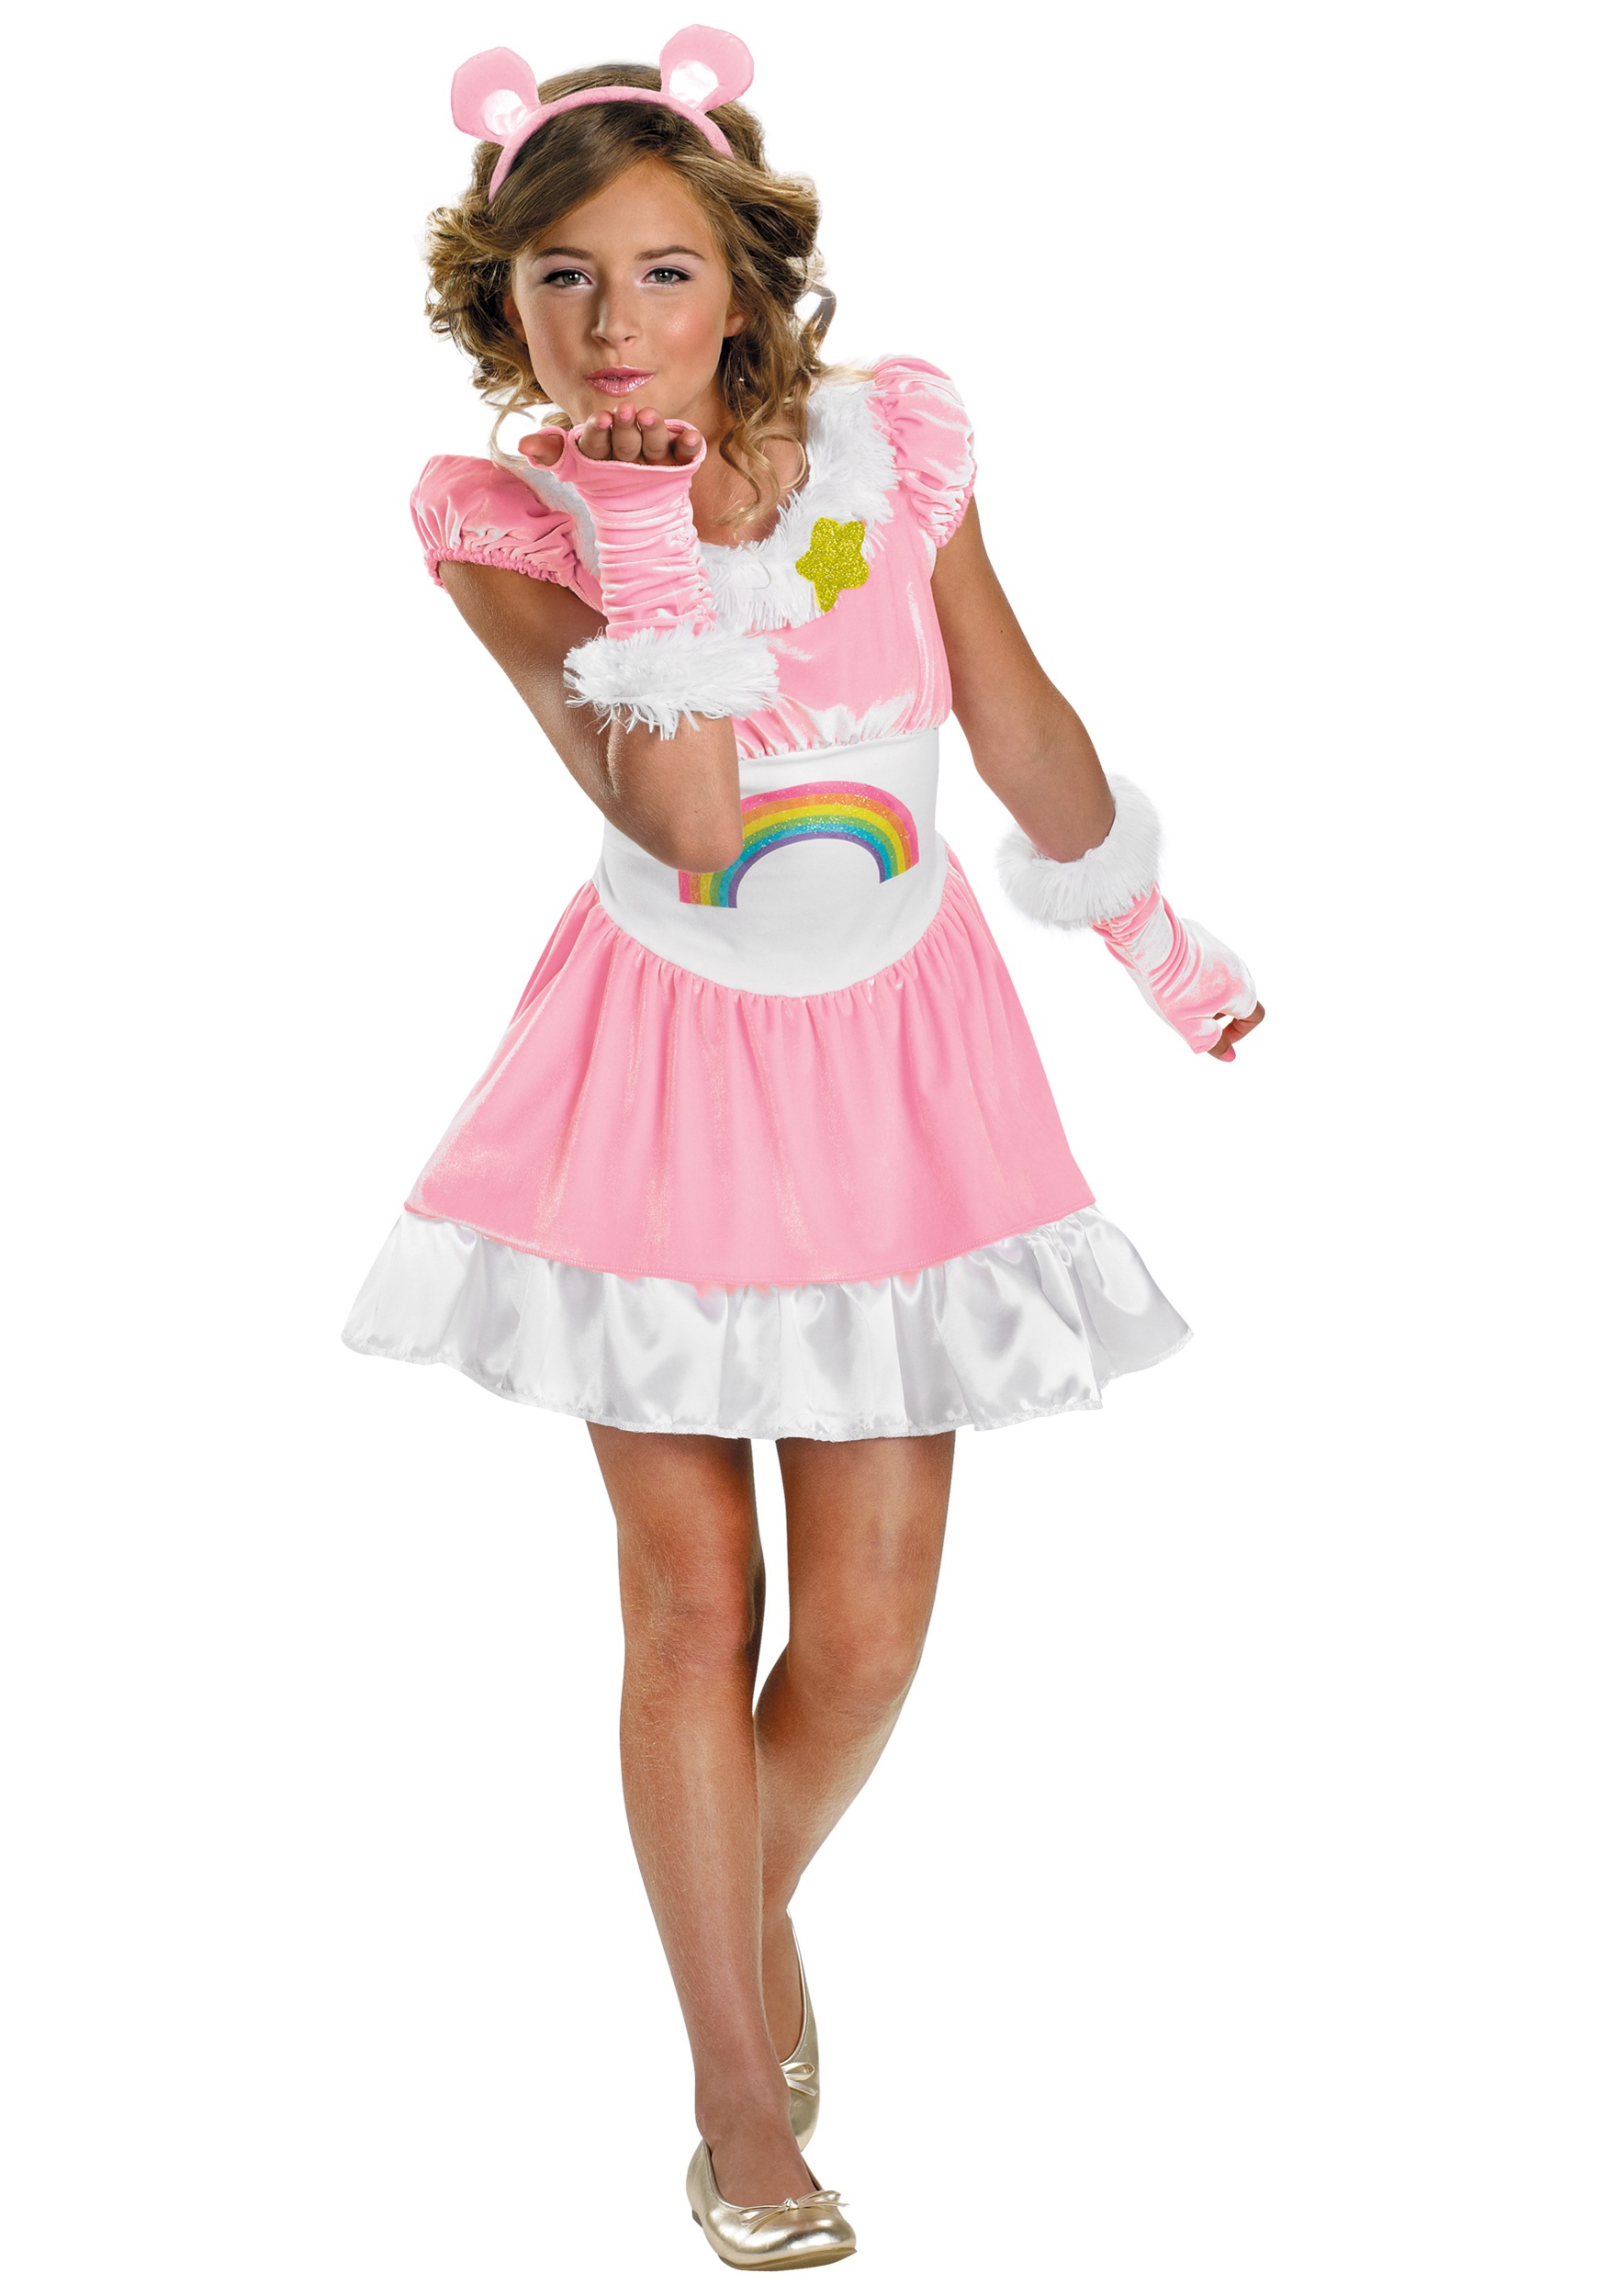 Tween Cheer Bear Costume  sc 1 st  Halloween Costumes & Tween Cheer Bear Costume - Halloween Costume Ideas 2016